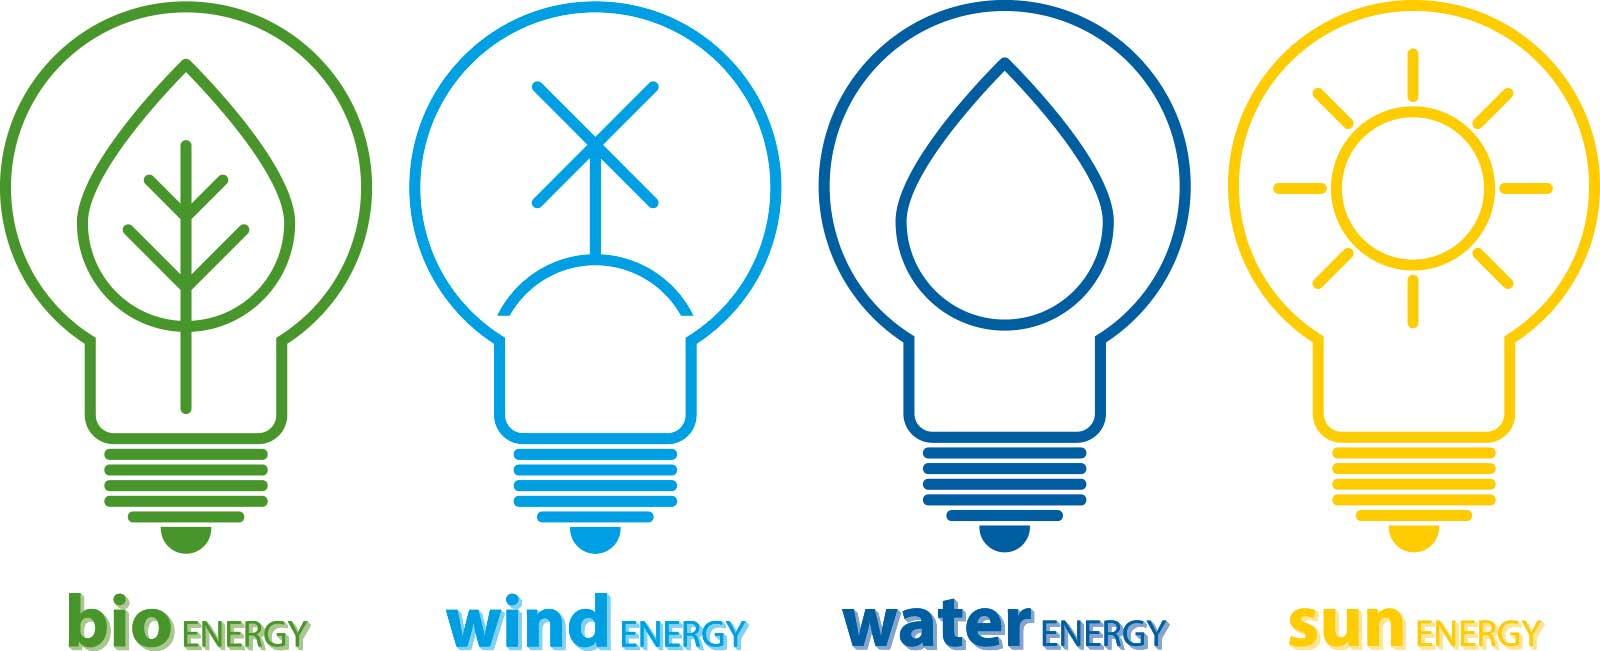 bio energy - wind energy - water energy - sun energy